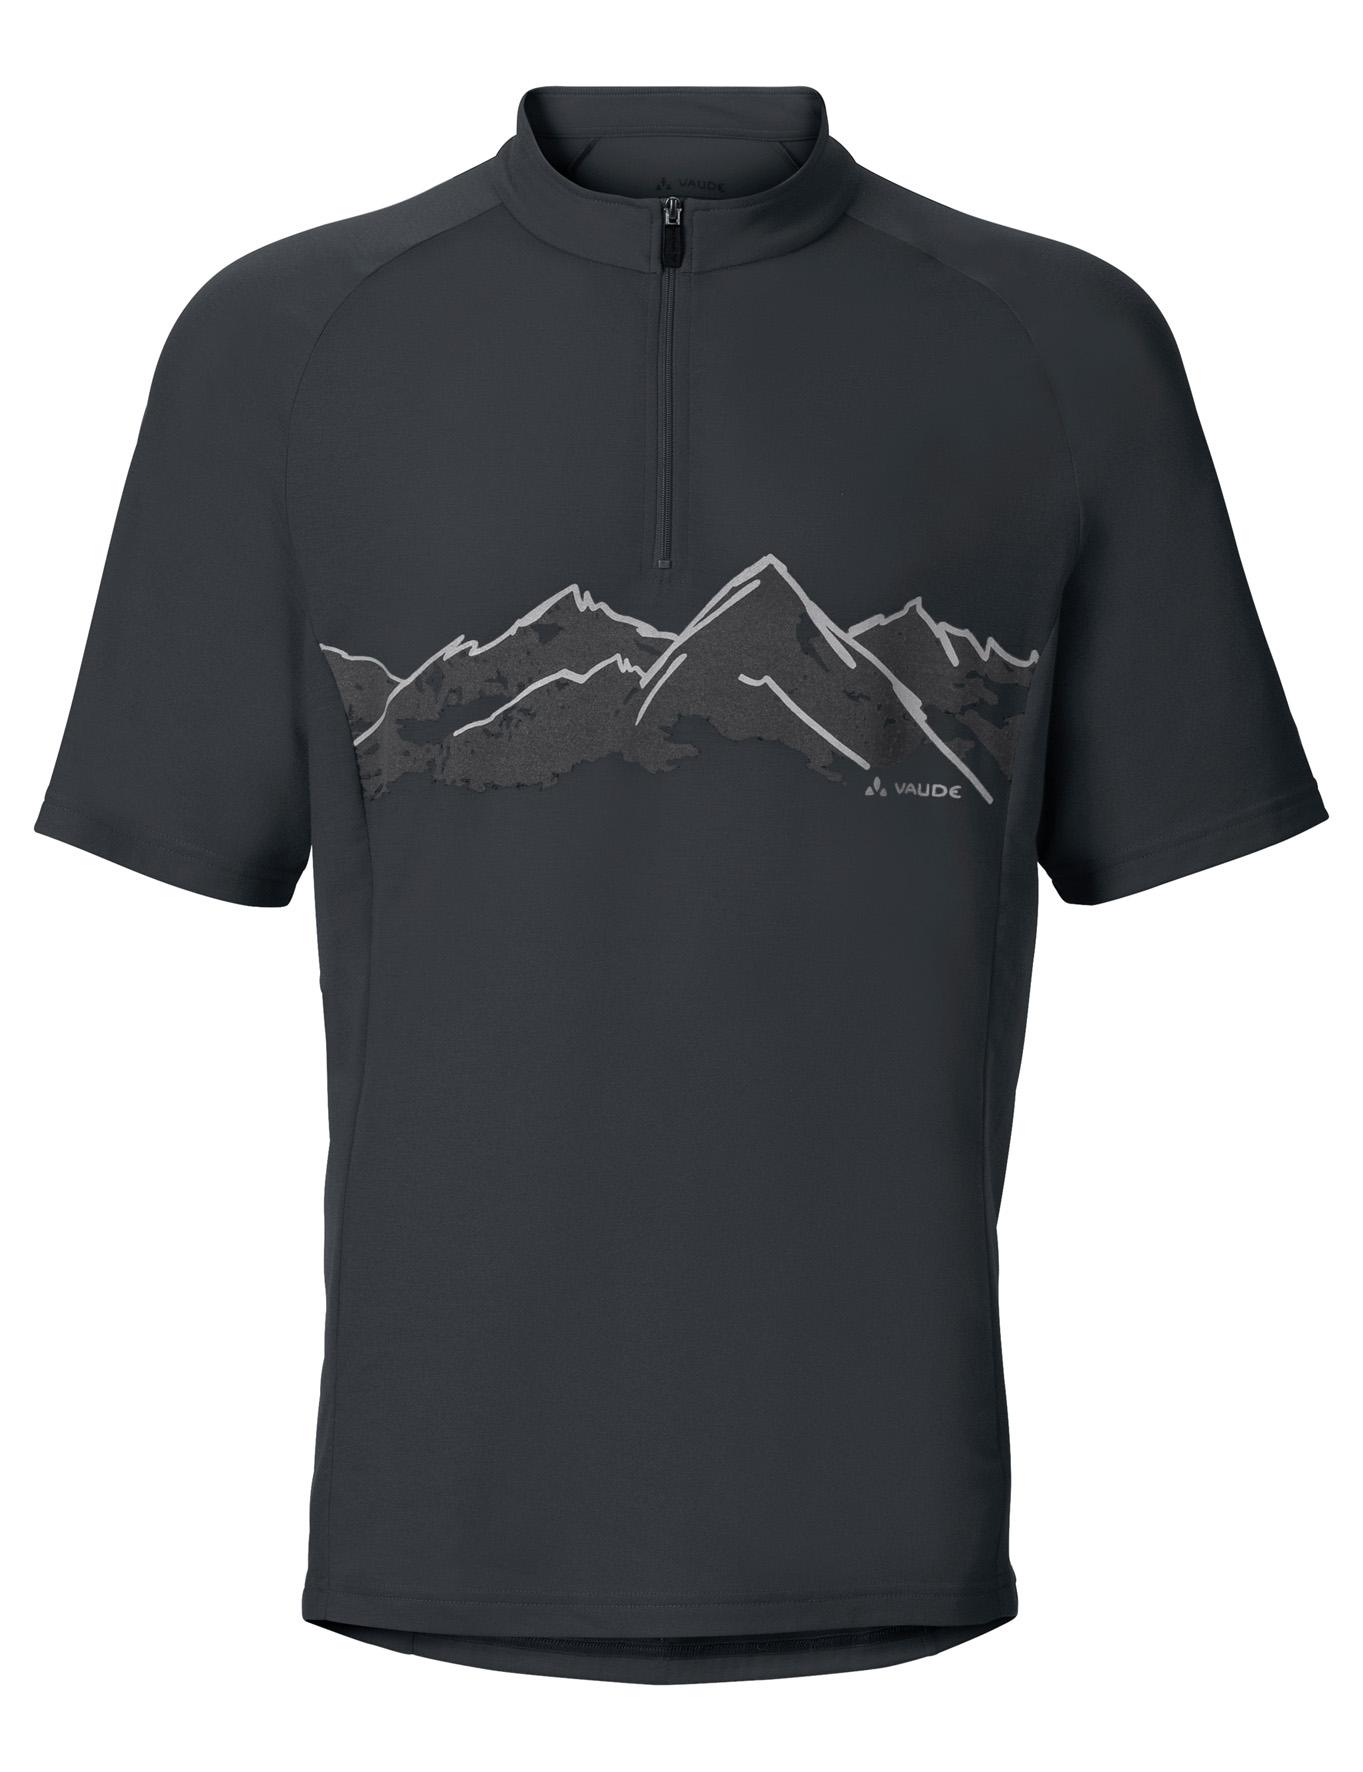 VAUDE Men´s Sentiero Shirt II black Größe L - schneider-sports